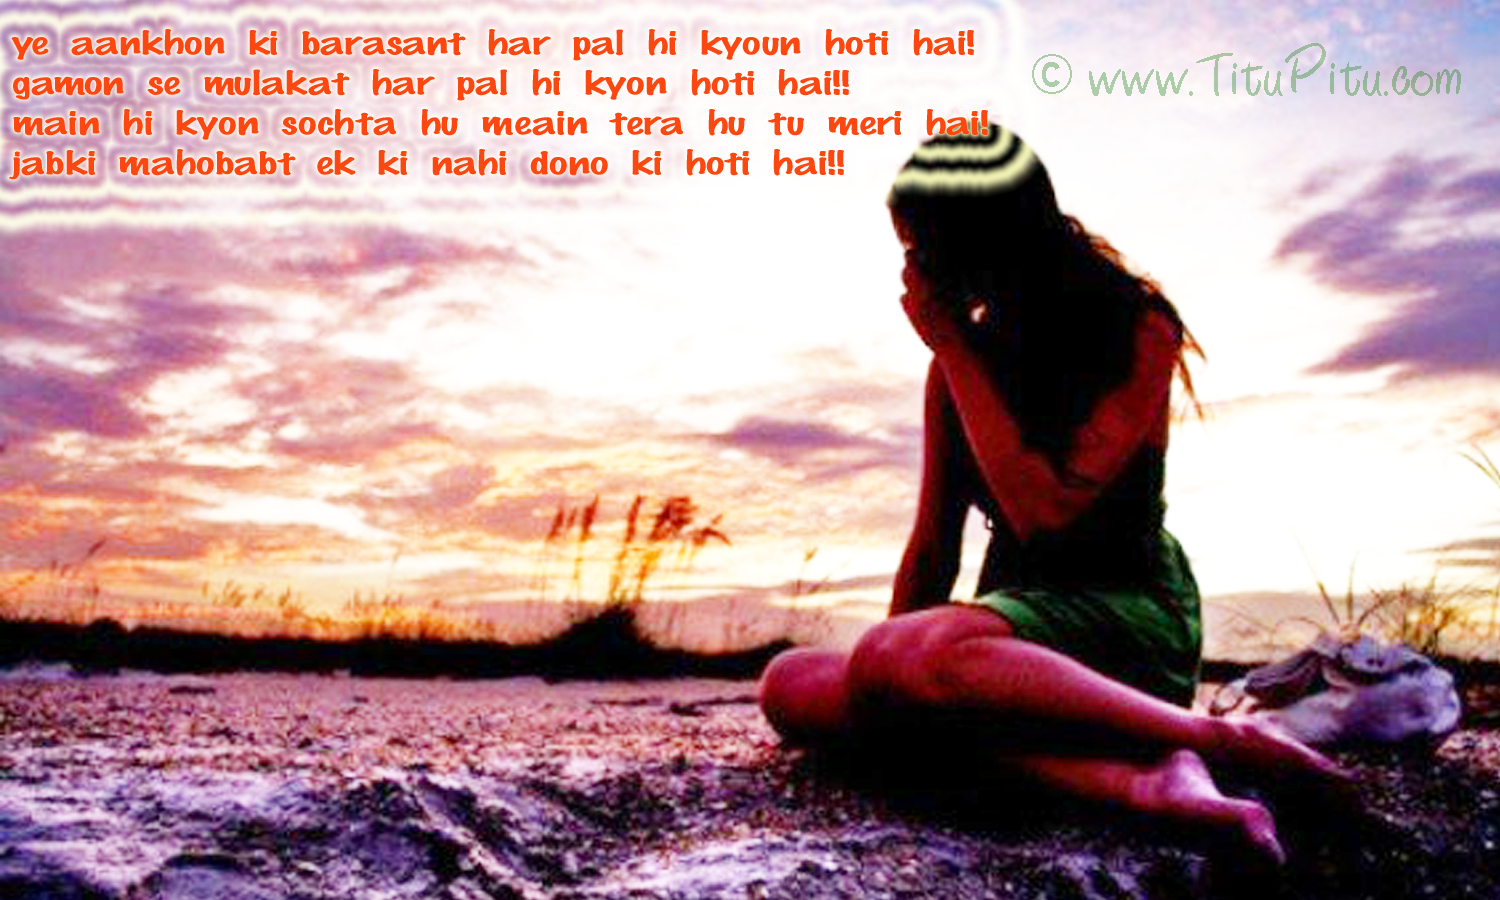 Sad Love Judai Wallpaper : Shayari Dard Bhari 2015 Hd Search Results calendar 2015